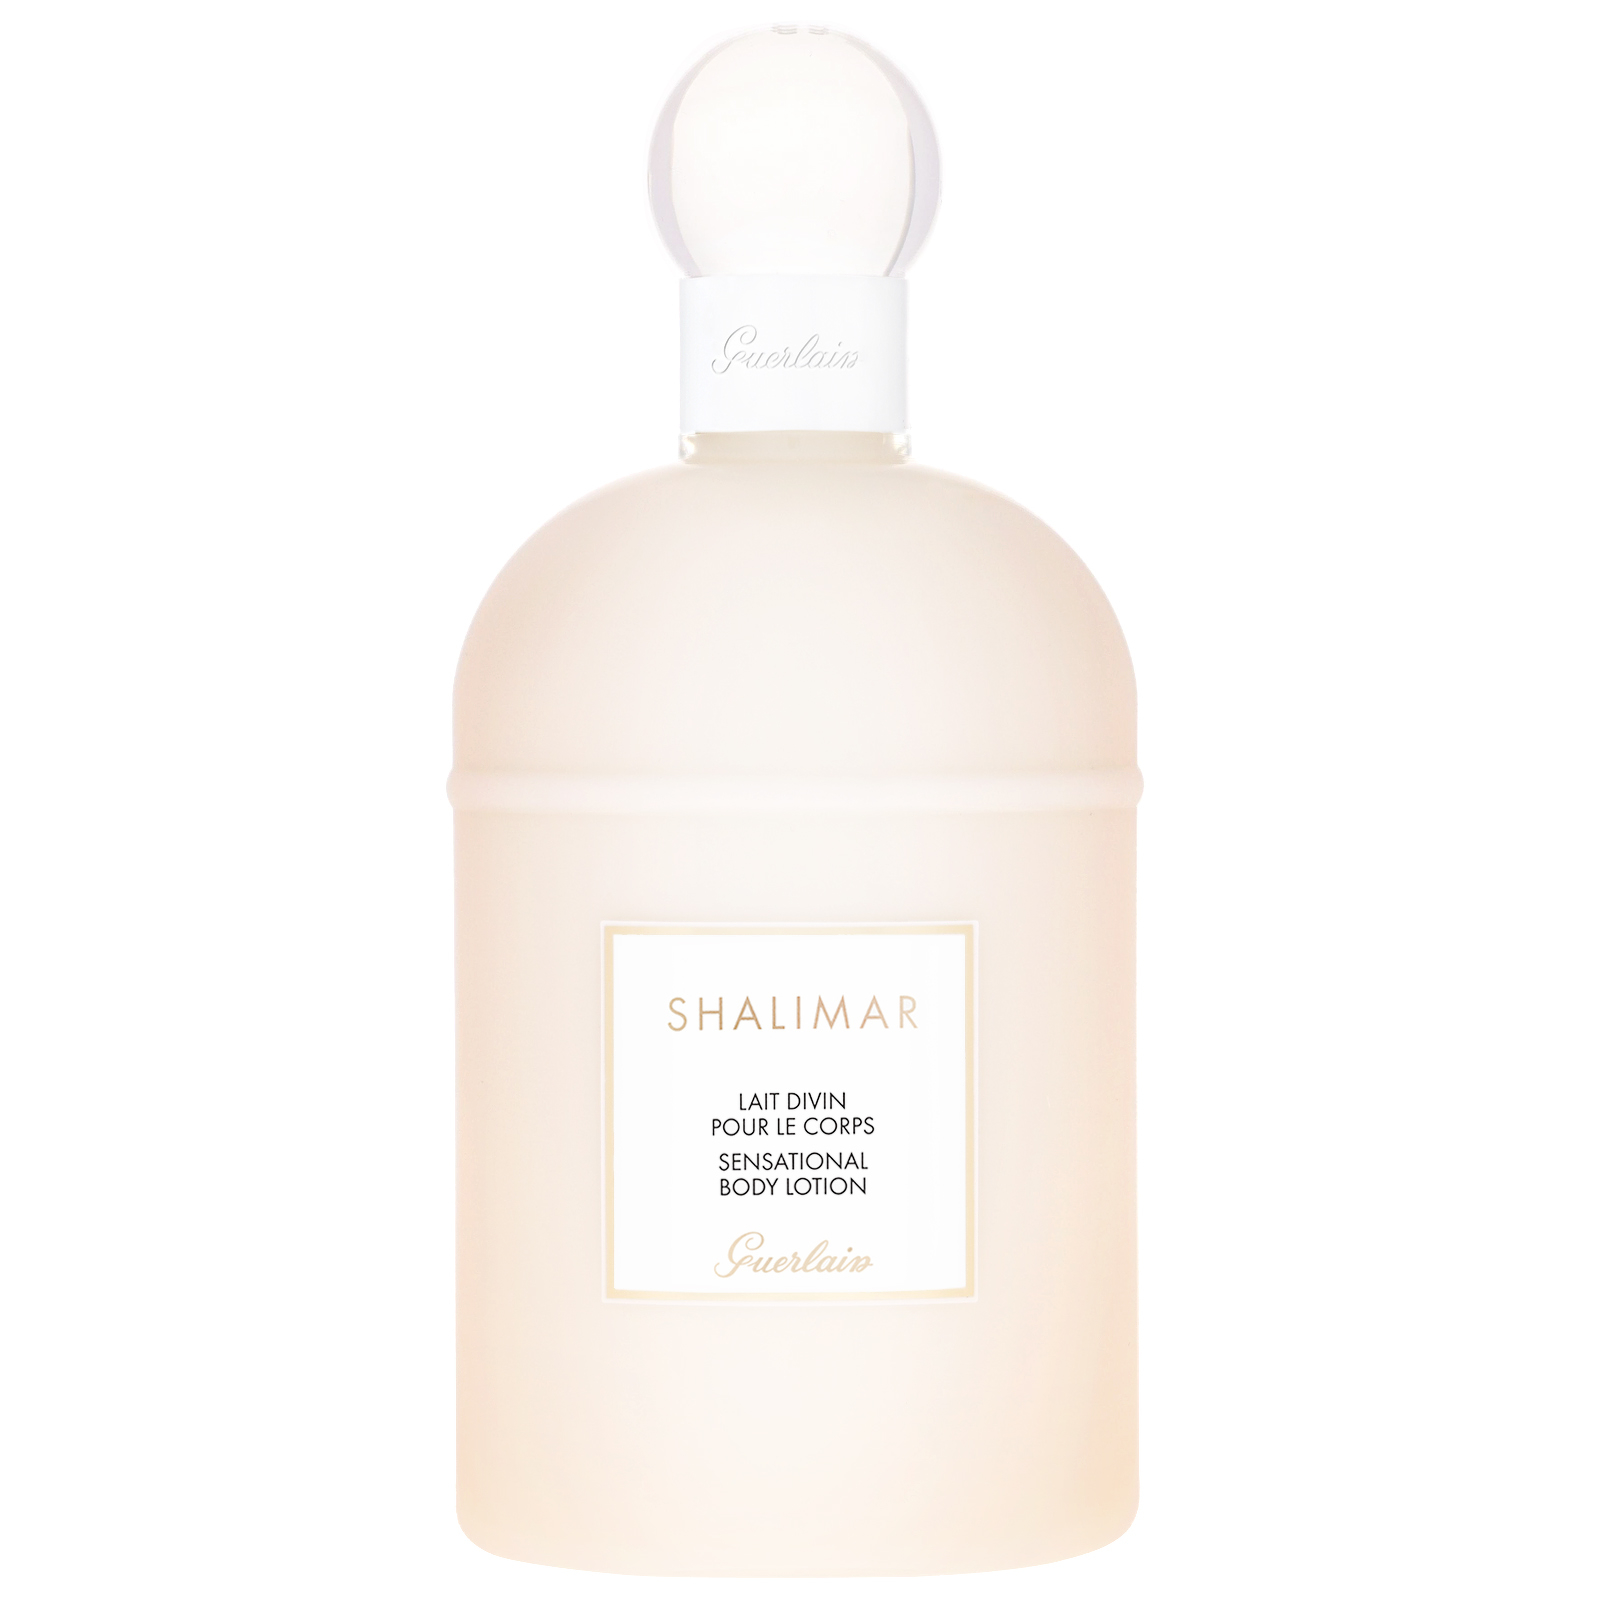 Guerlain Shalimar Sensational Body Lotion 200ml / 6.7 fl.oz.